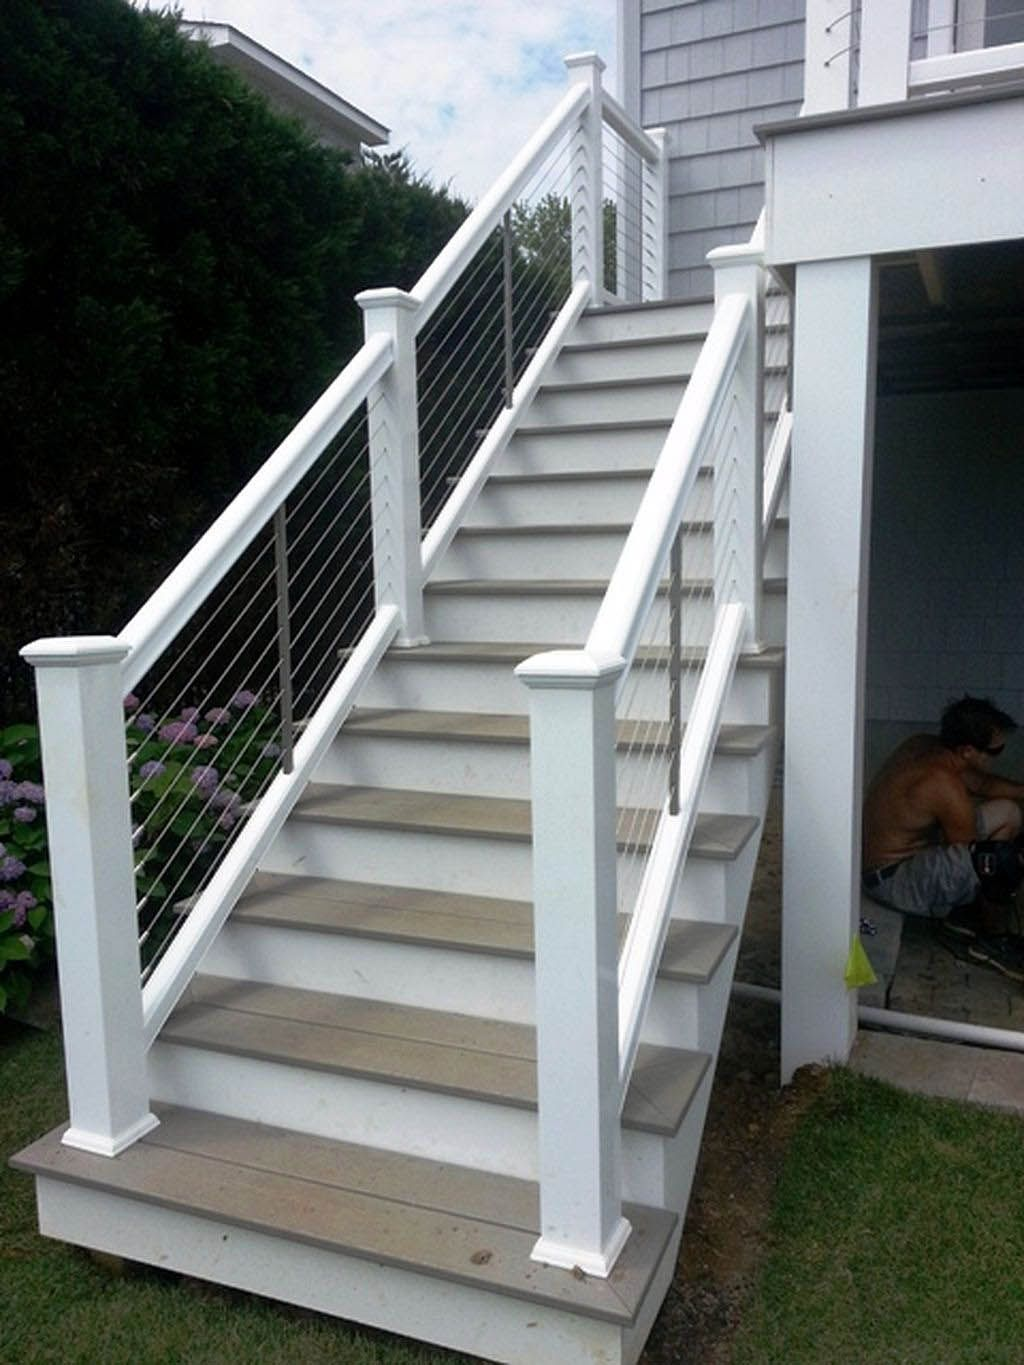 Exterior Stair Railing Ideas That You Can Build Yourself | Outdoor Deck Stair Railing